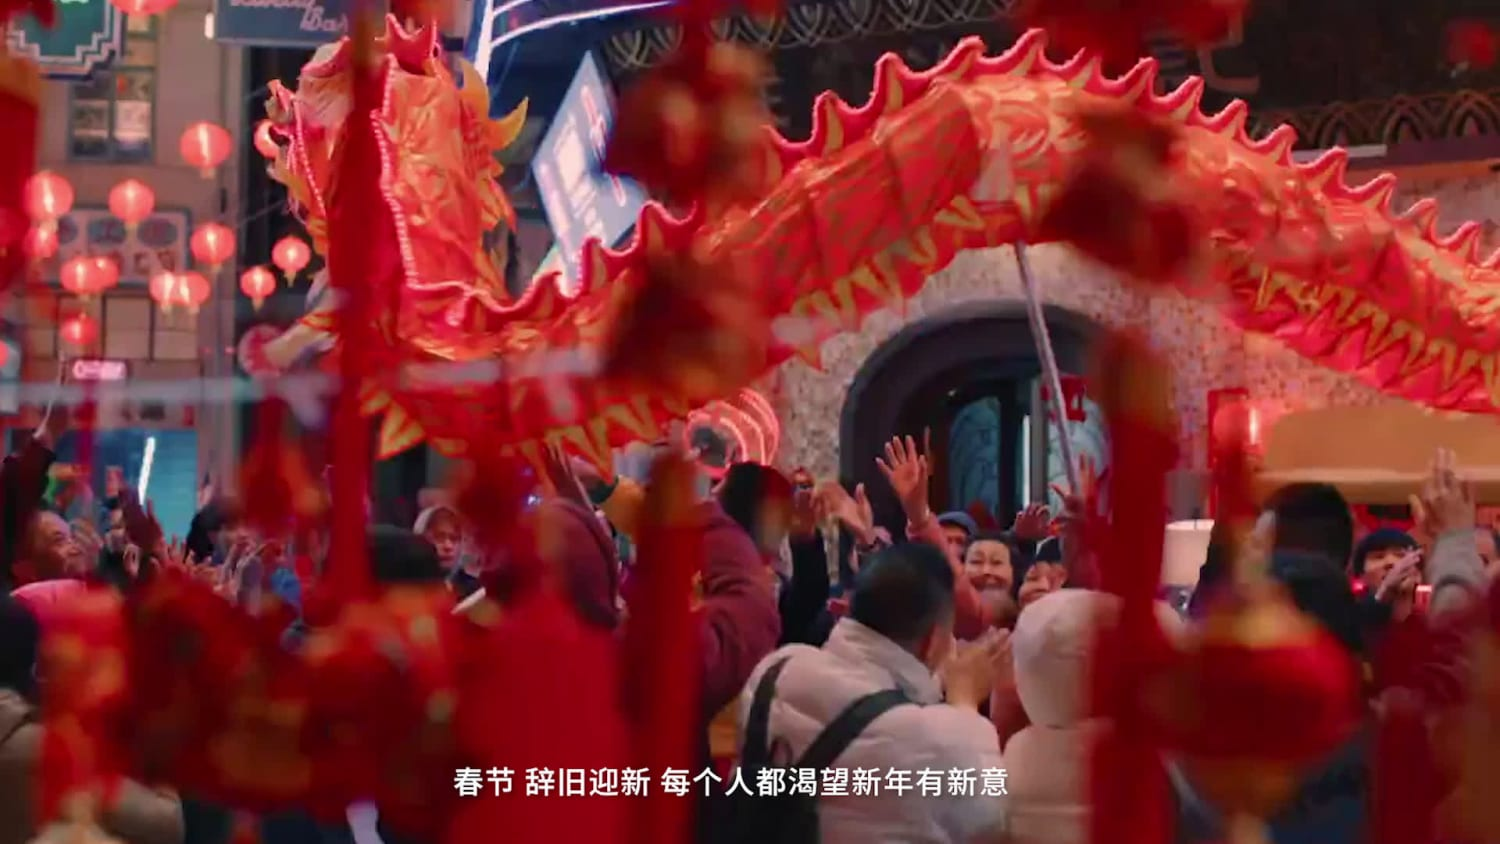 China Office WORK Microsofy CNY Campaign Case Video CHIN